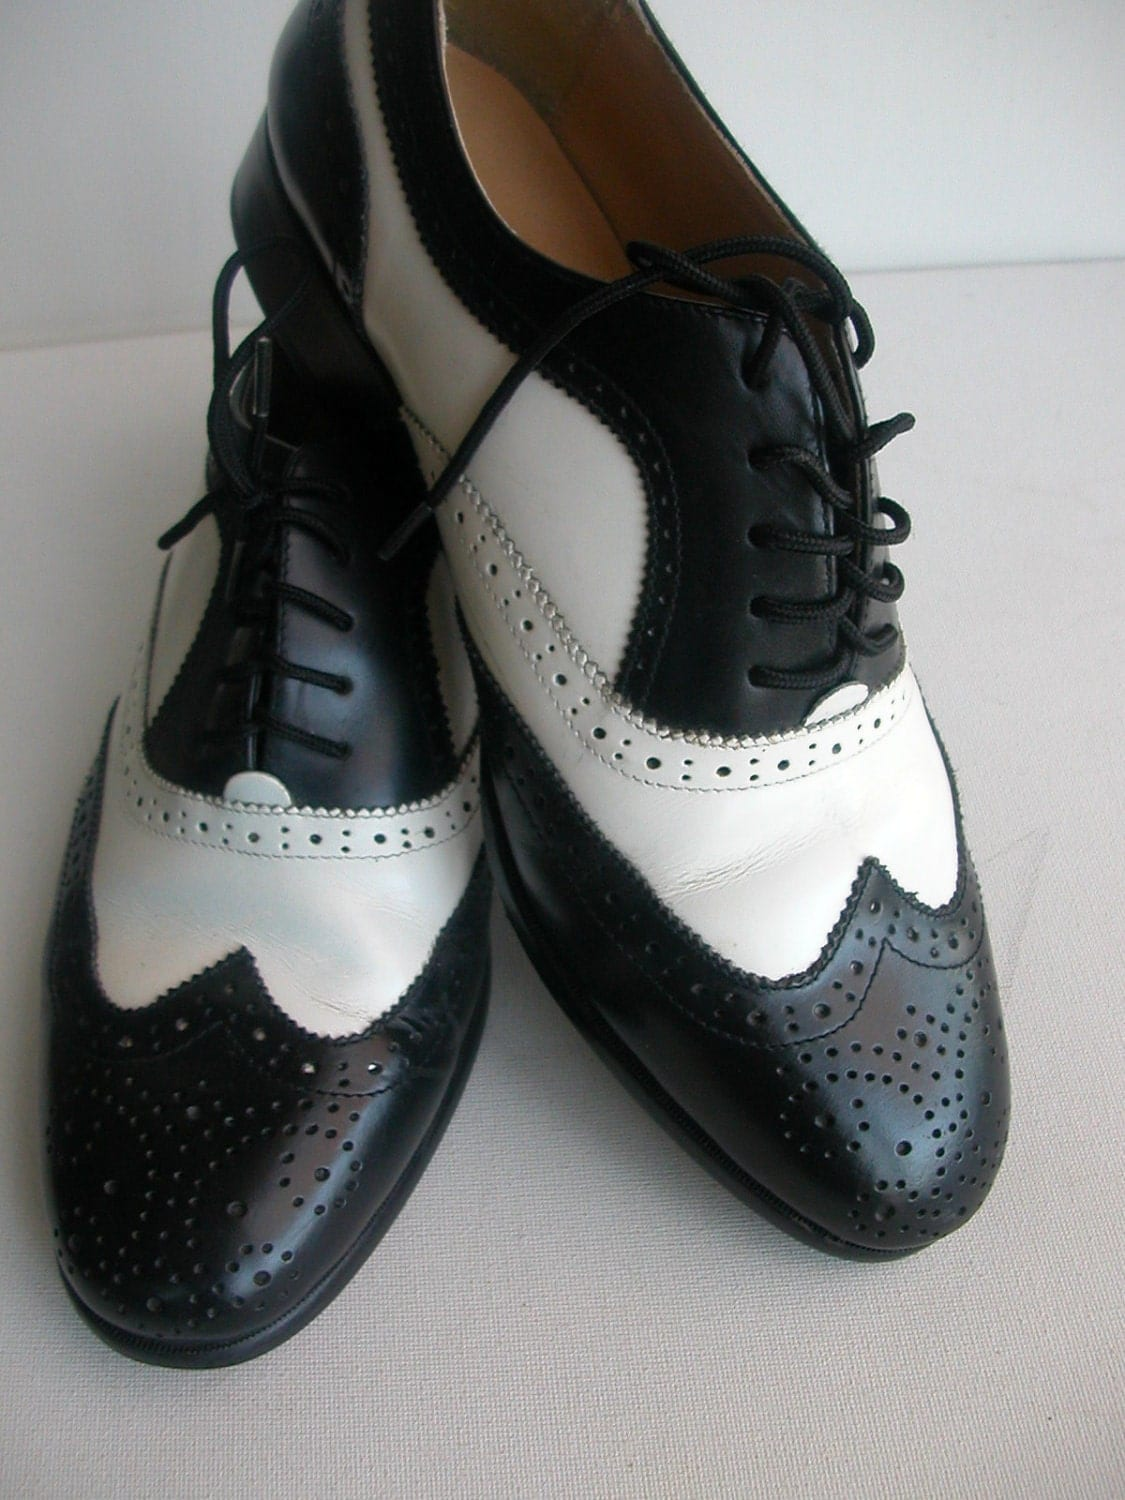 Womens Saddle Oxford Shoes Two Tone White Pink Lace Up Retro Costume Flats Featuring a pair of saddle shoes that will look great with a retro costume. They have a front lace up and are two toned.